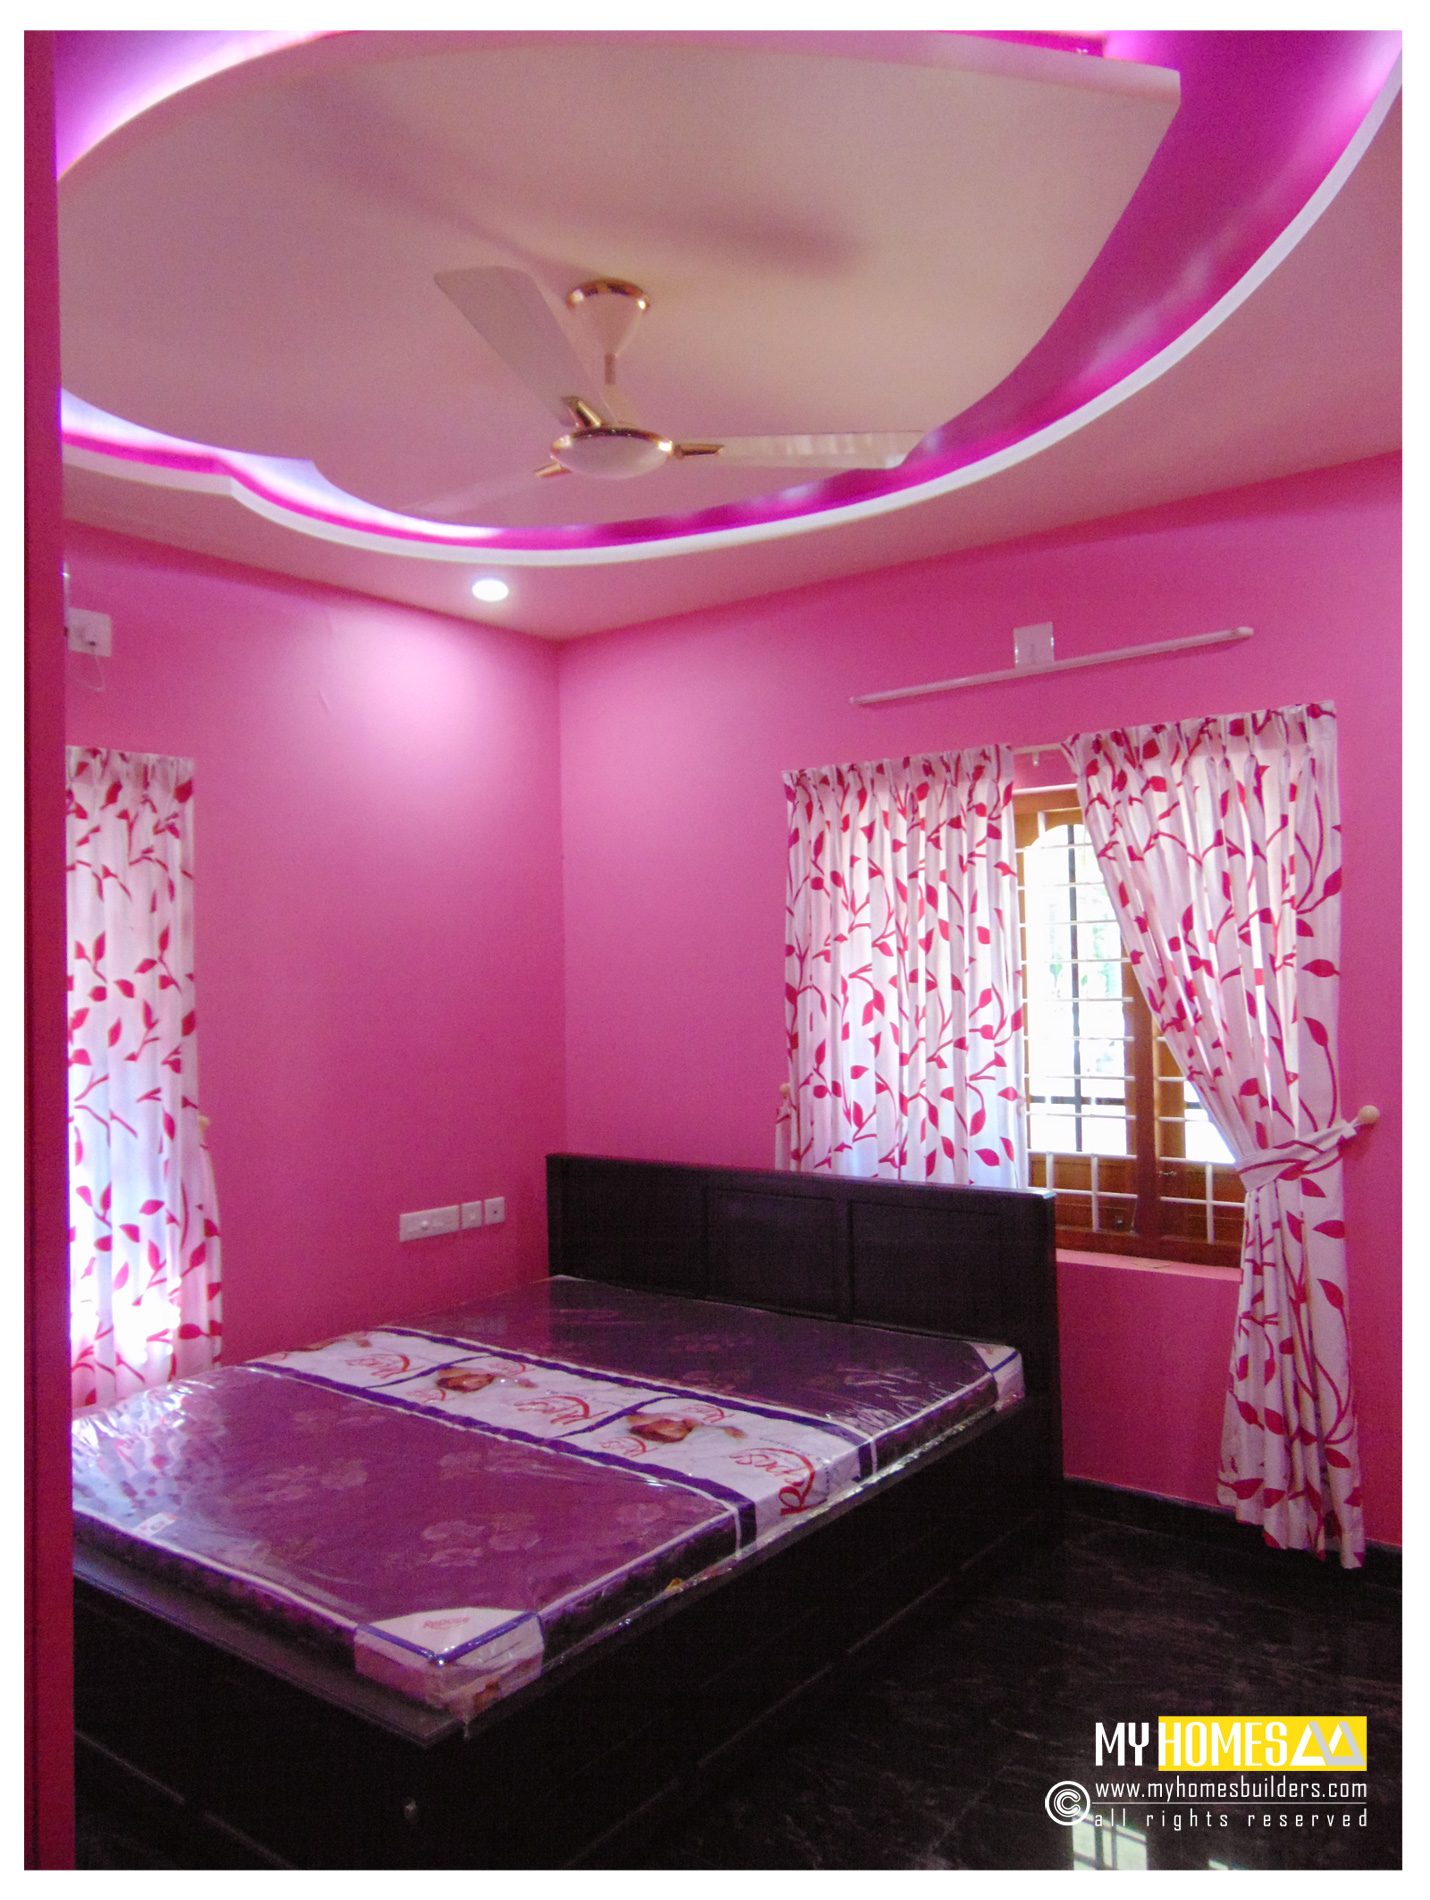 Simple Style Kerala Bedroom Designs Ideas For Home Interior: photos of bedrooms interior design